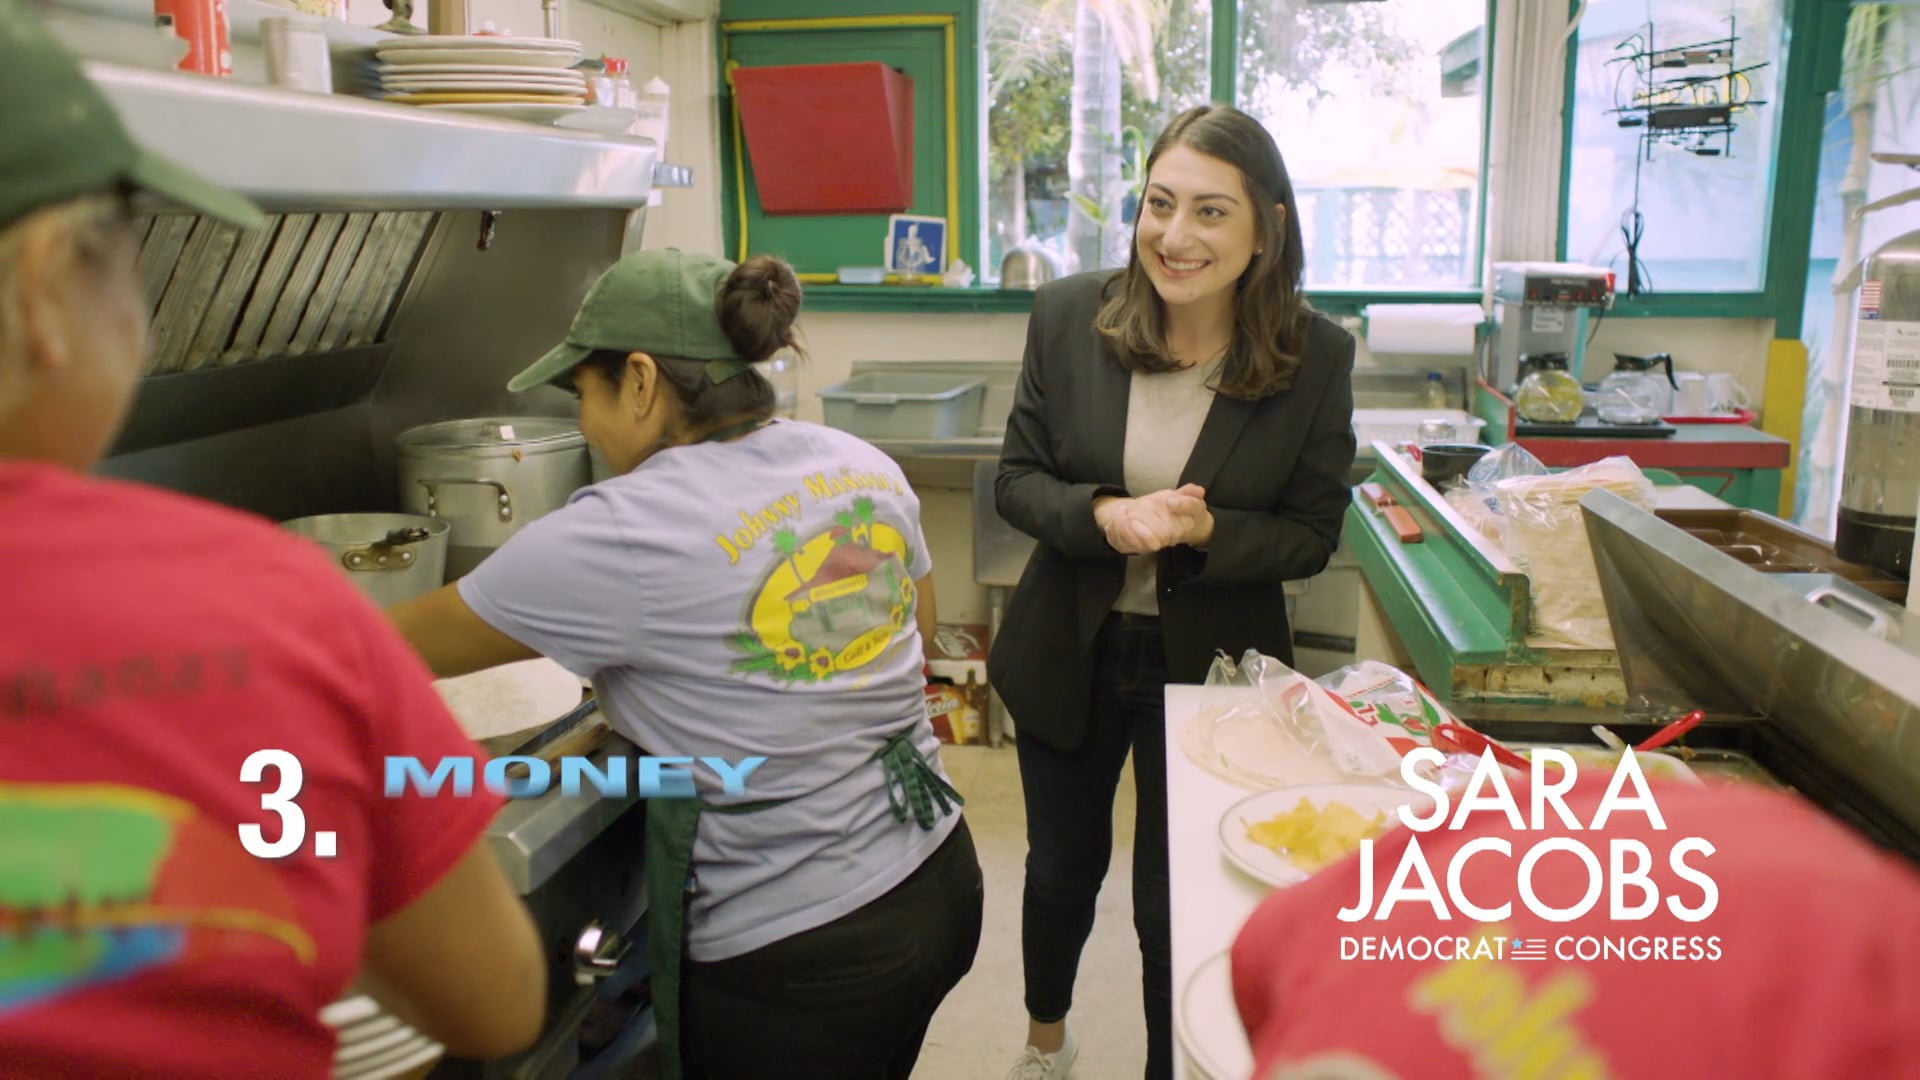 Jacobs Campaign Ad